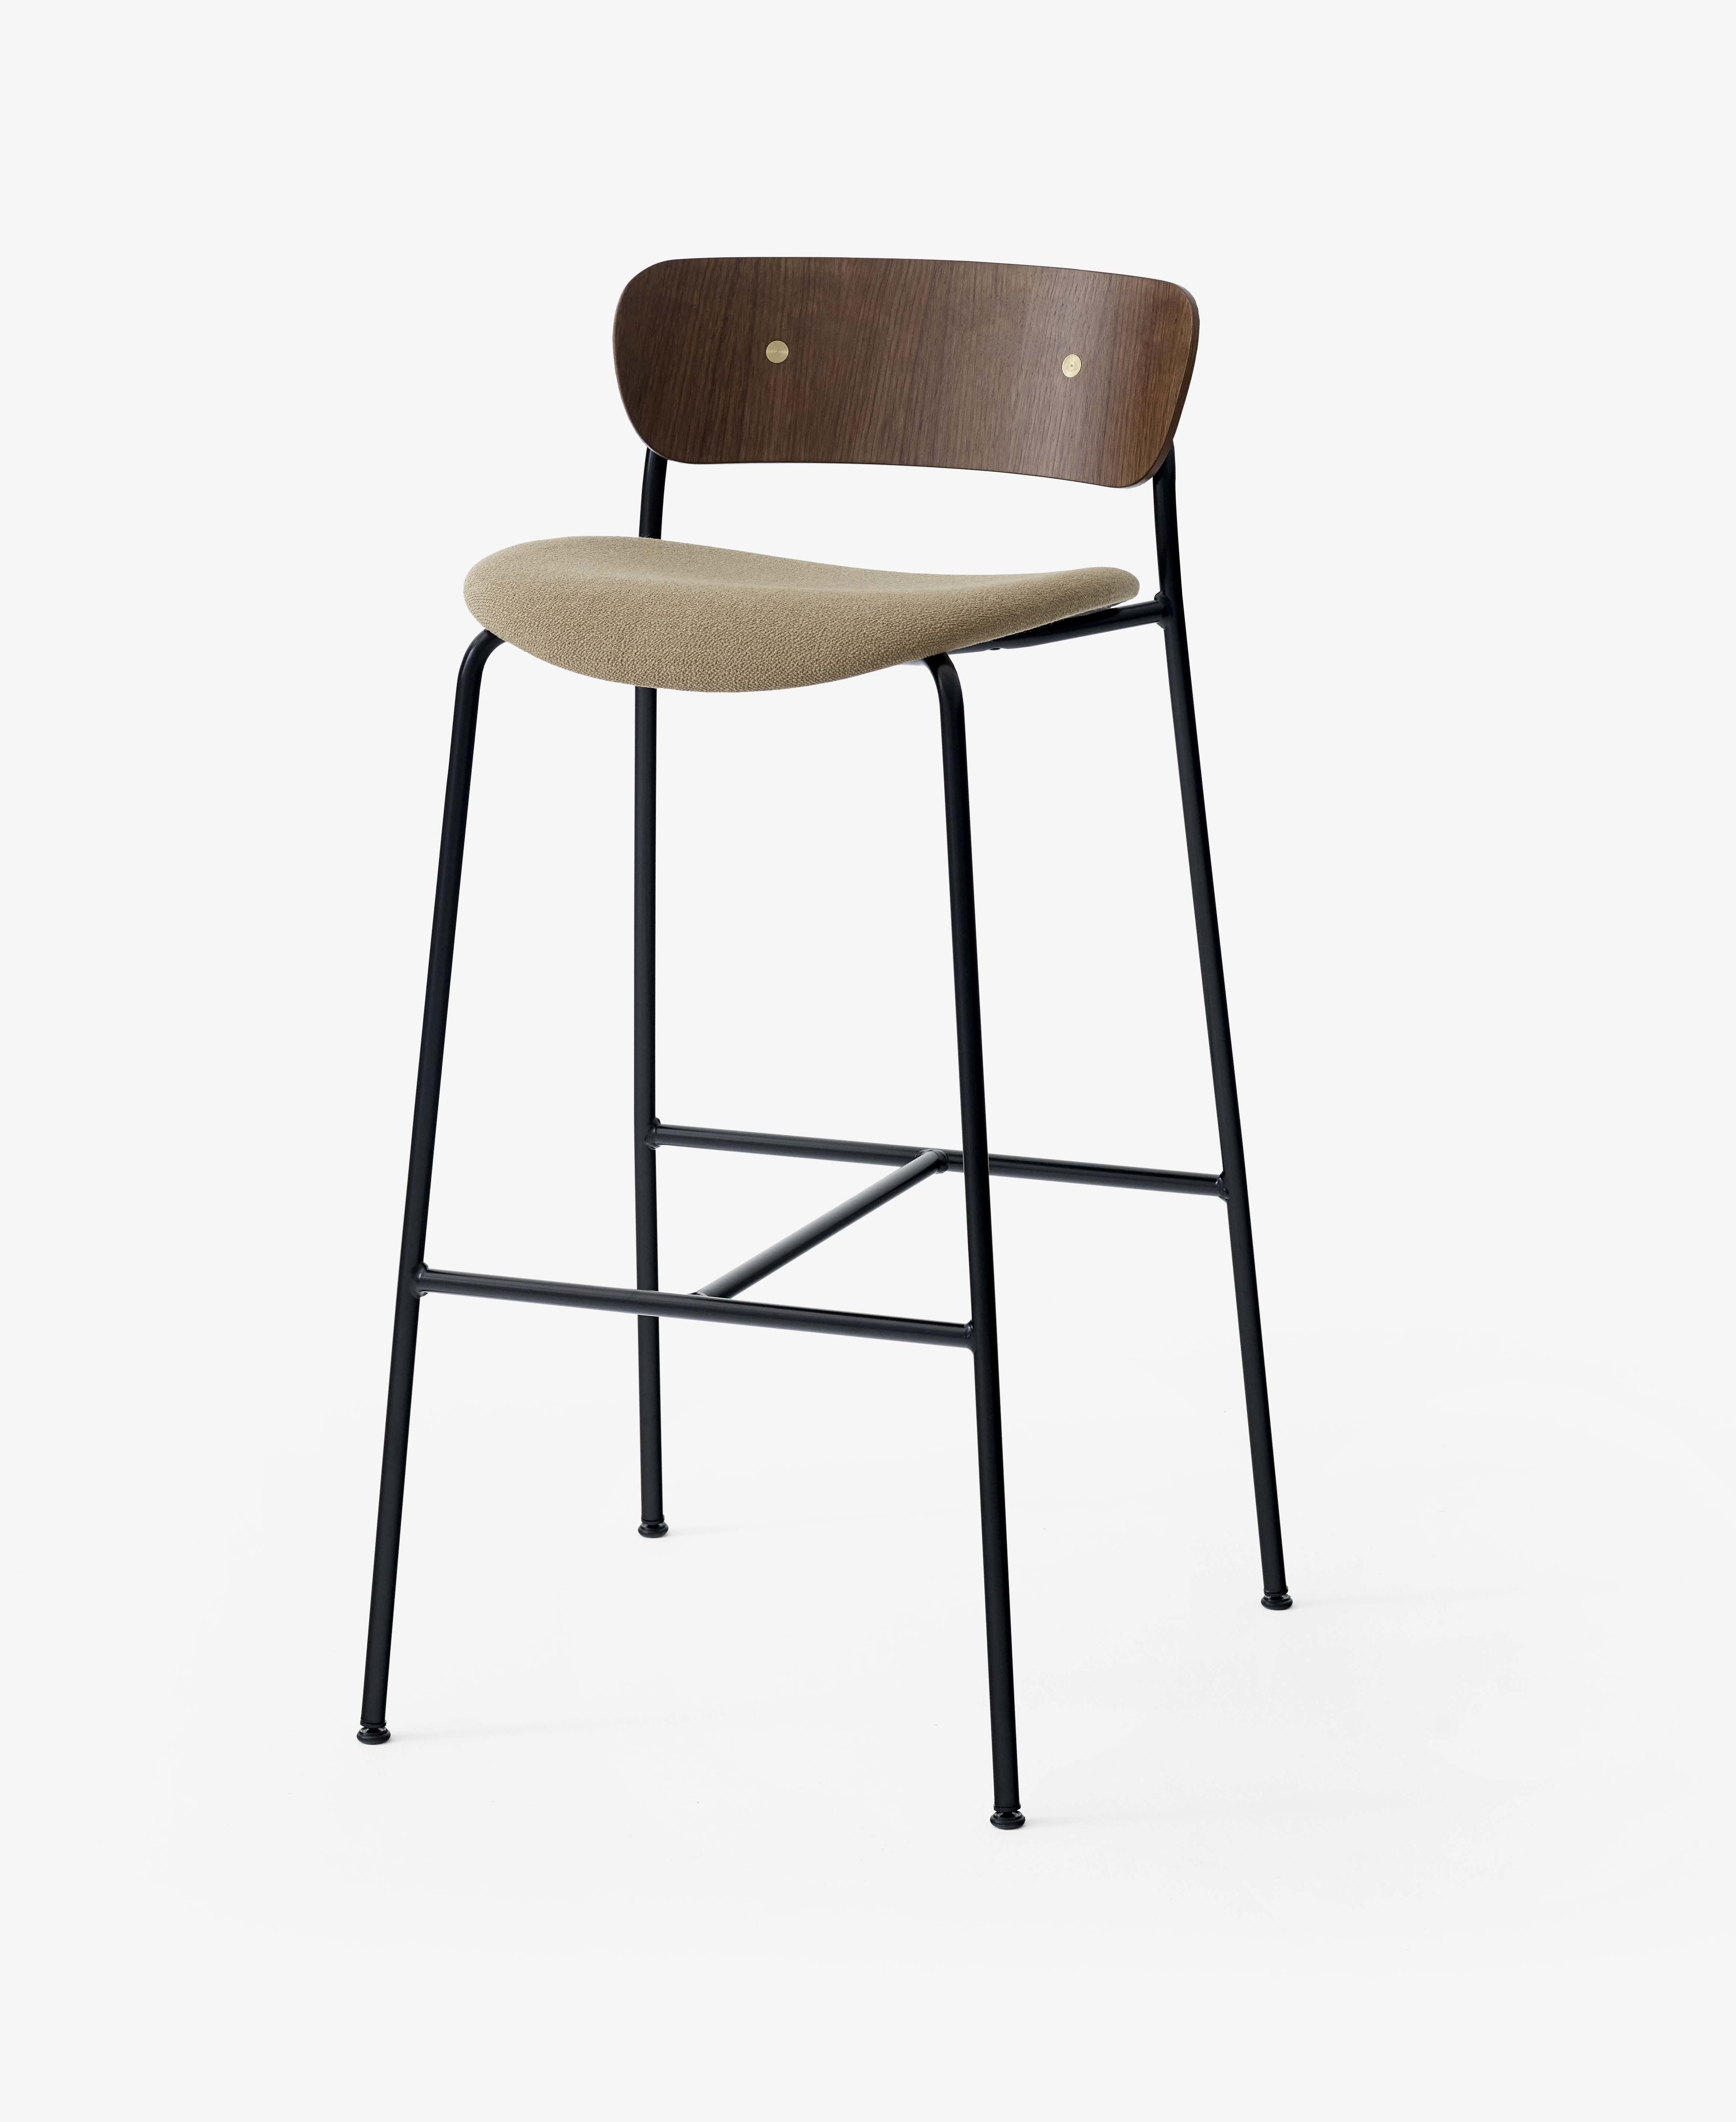 Andtradition Pavilion Stool Upholstered Seat Haute Living